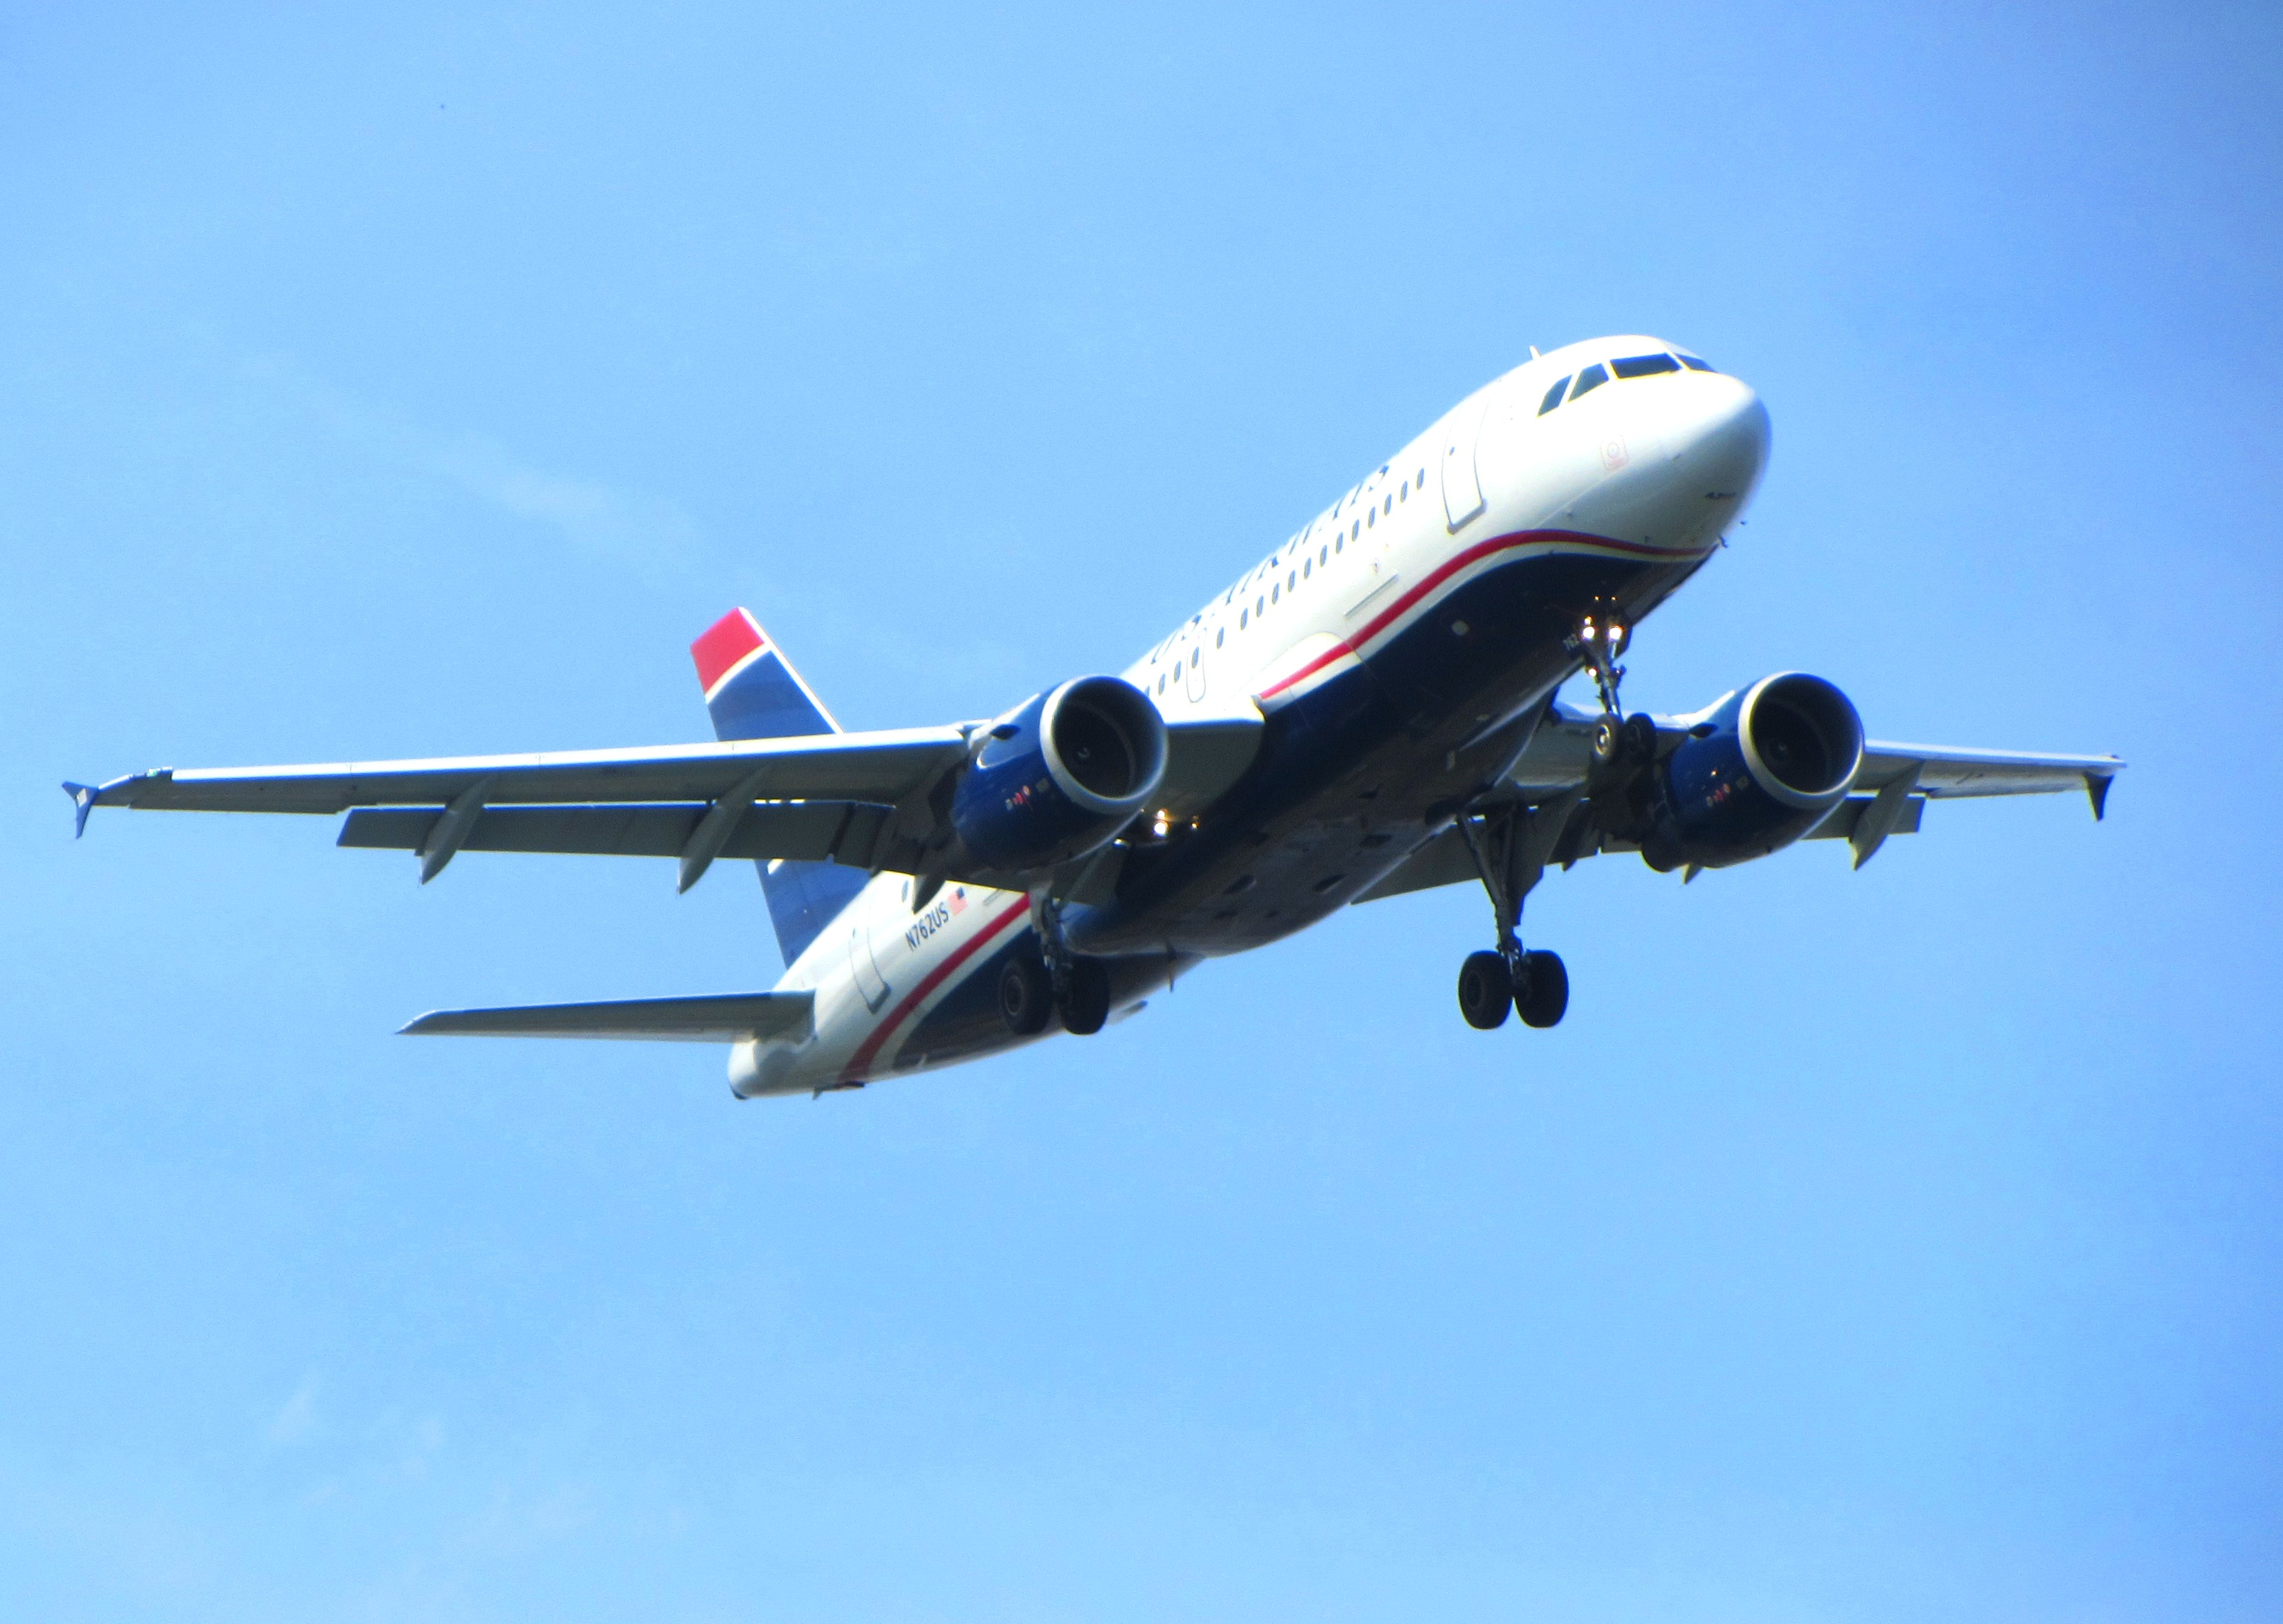 A US Airways jet approaches DCA in FAA-choreographed precision. Taken from the Arlington Memorial Bridge, April 2013